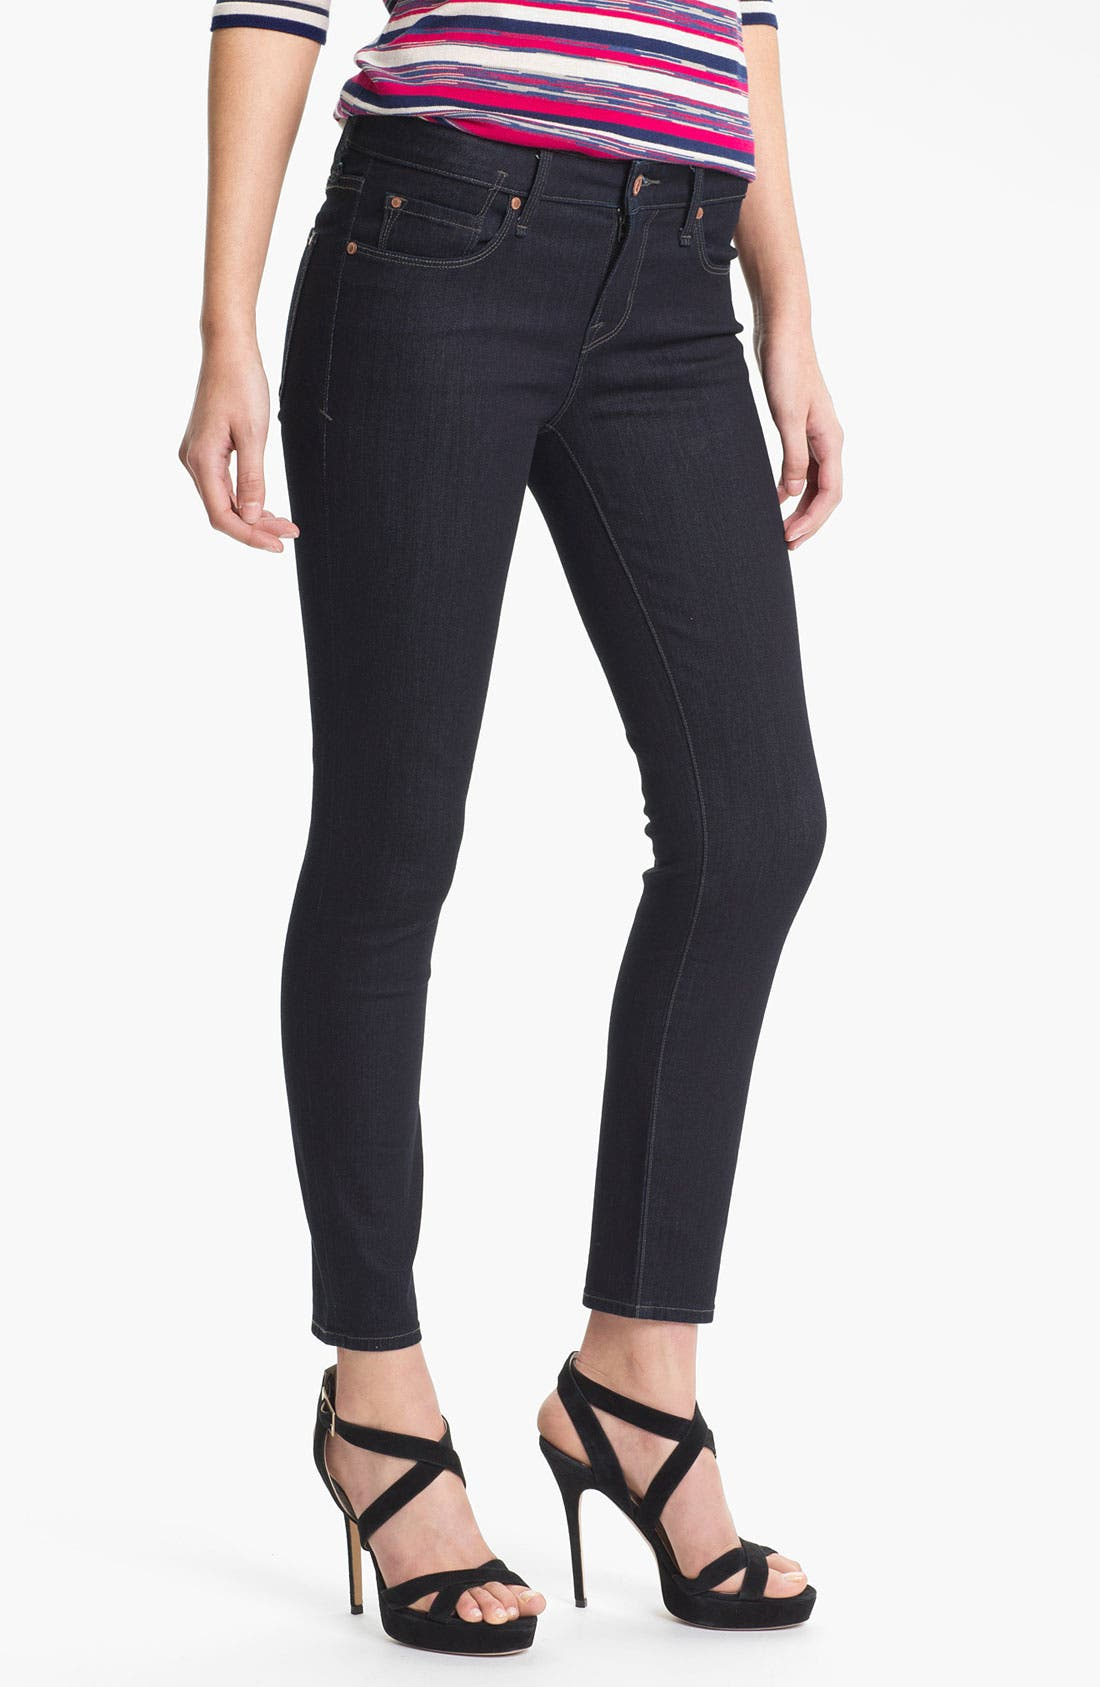 Alternate Image 1 Selected - MARC BY MARC JACOBS 'Lola' Crop Skinny Stretch Jeans